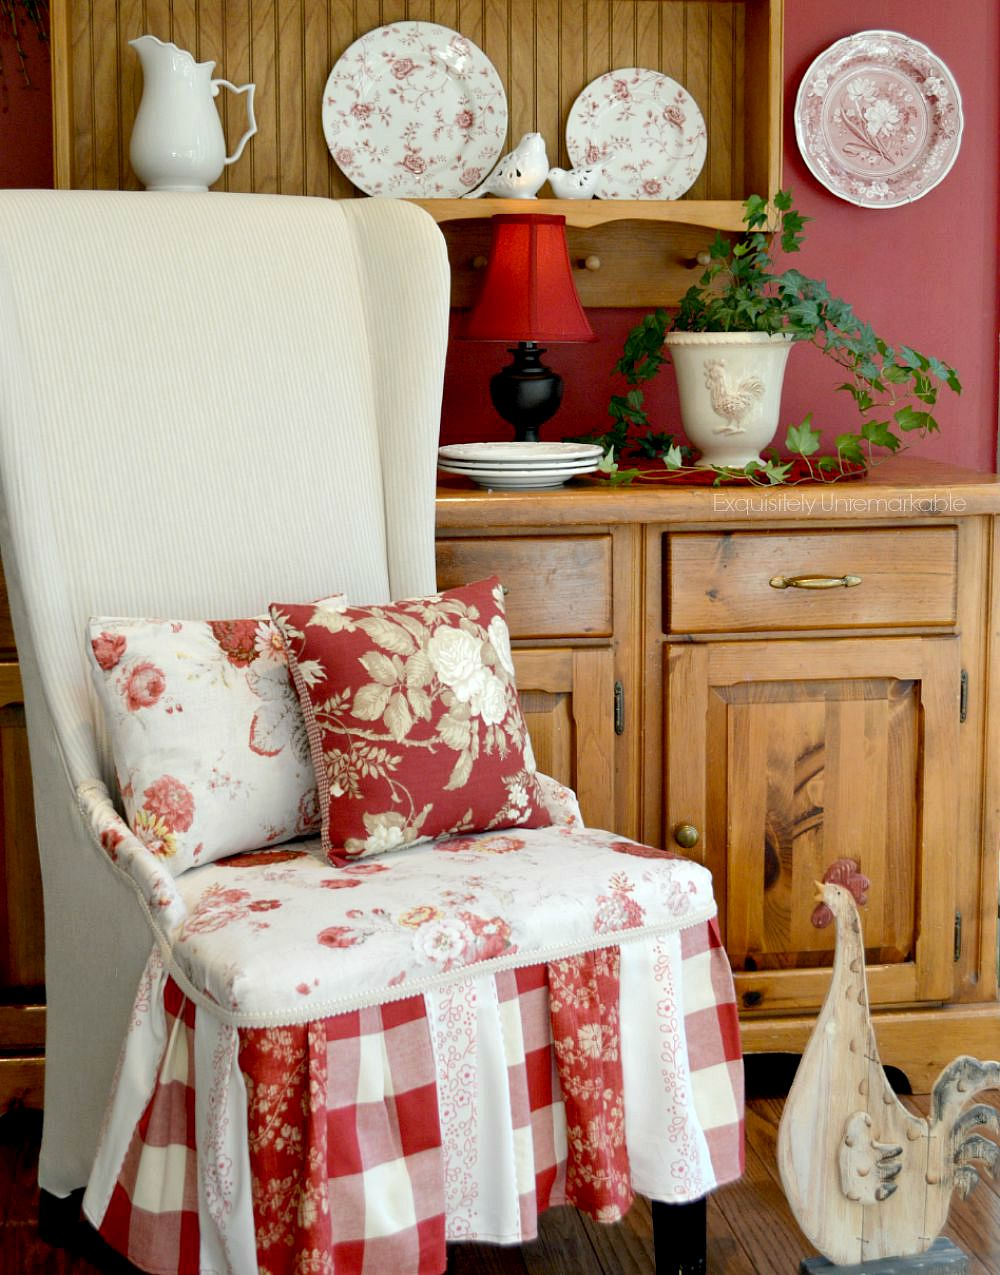 Repair an Upholstered Chair